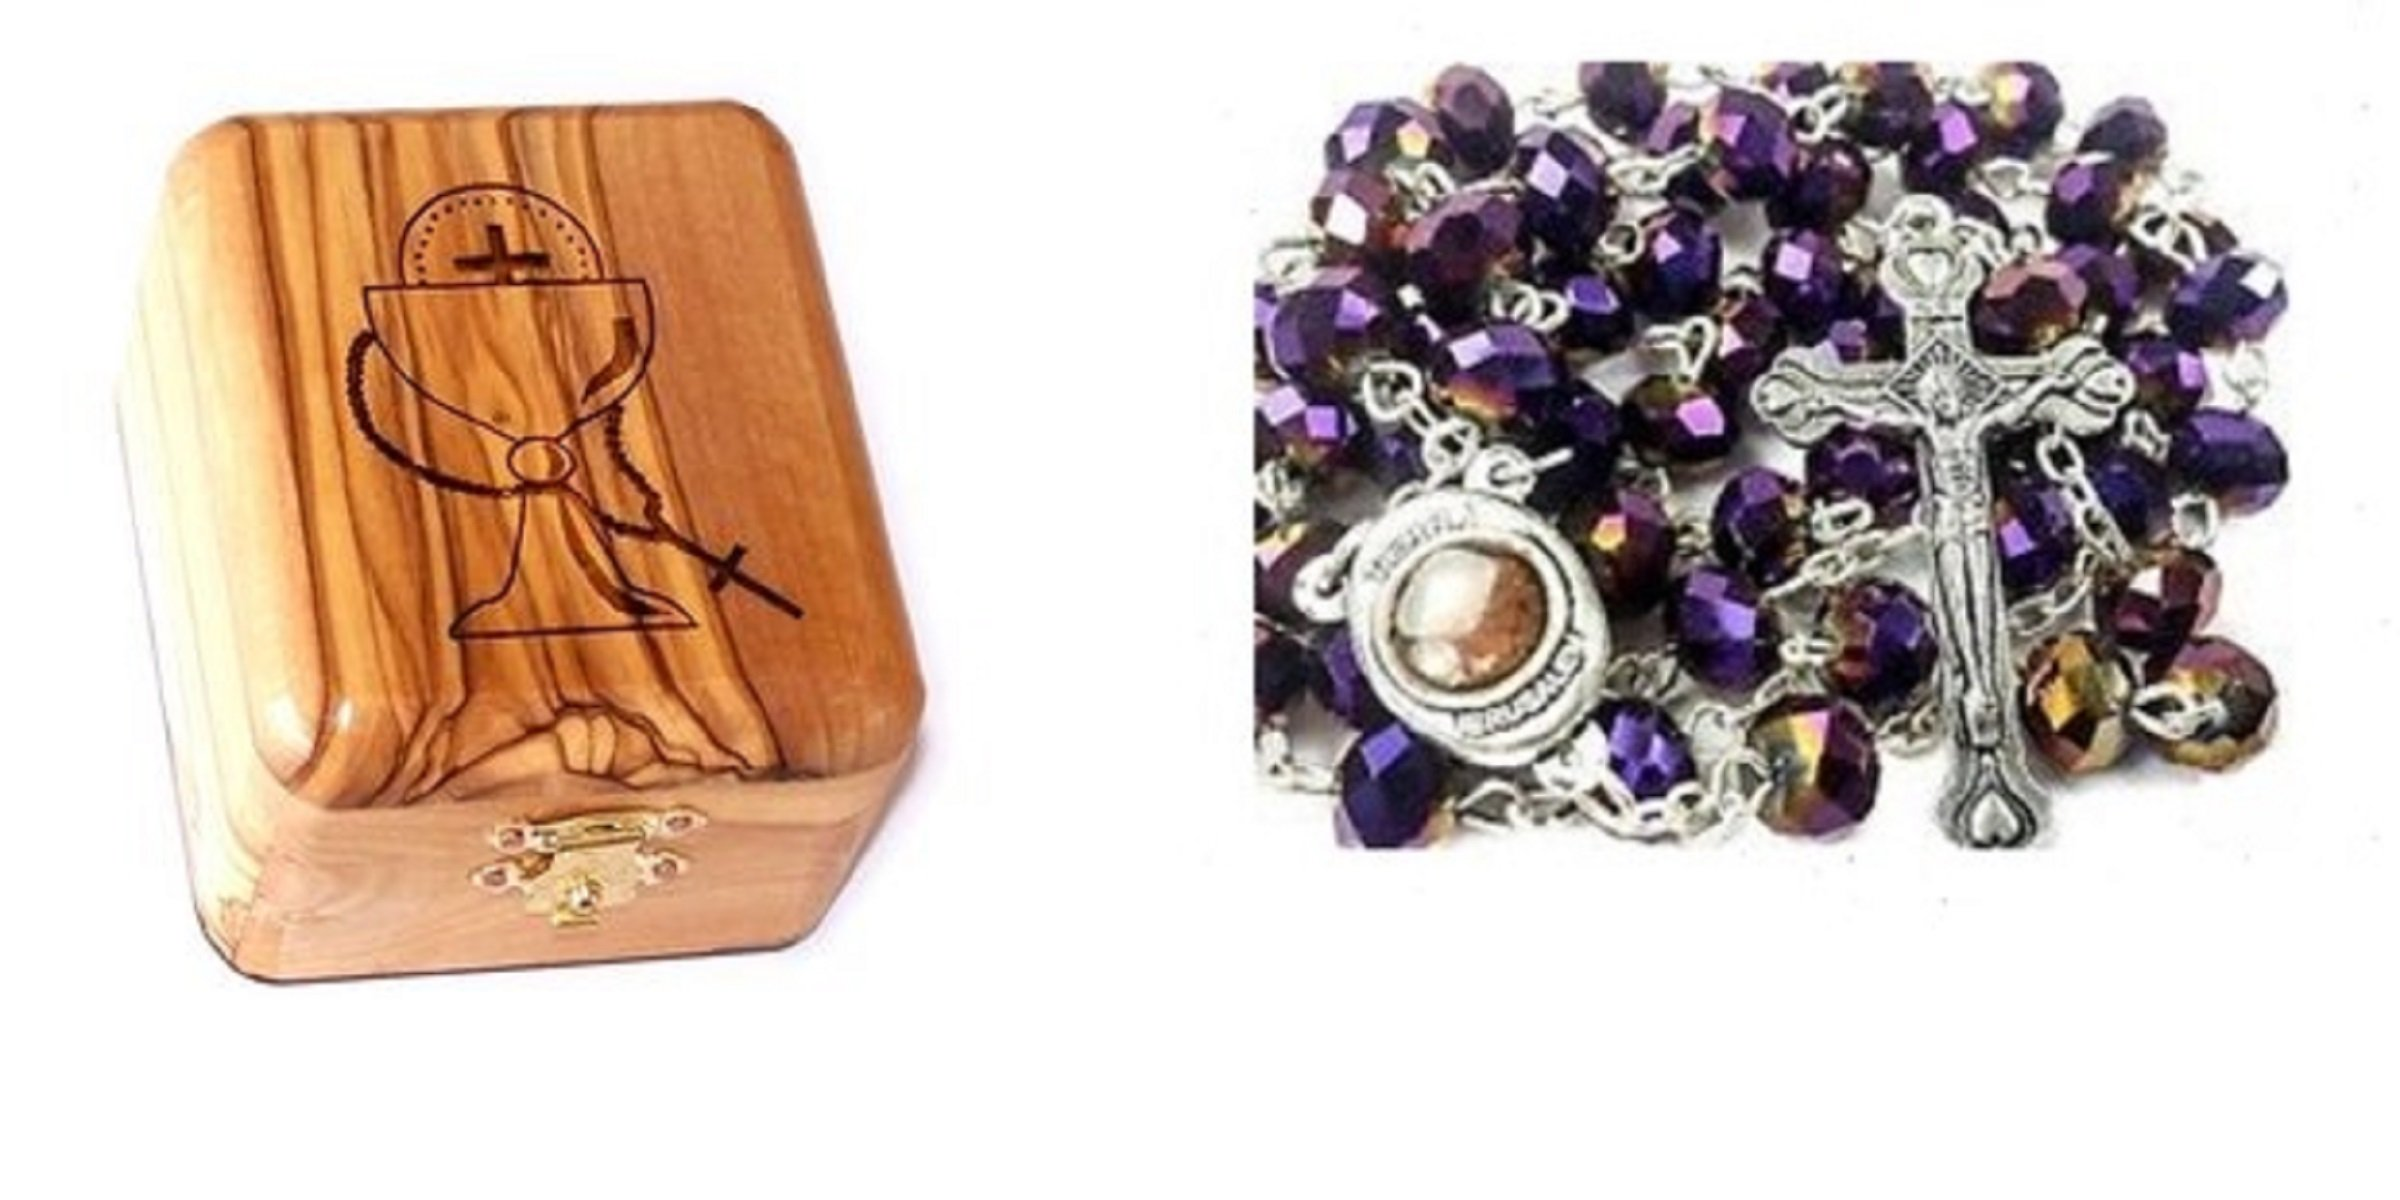 Olive Wood First Communion Jewelry Box with Holy Land Earth Glass Rosary by Bethlehem Gifts TM (Purple)